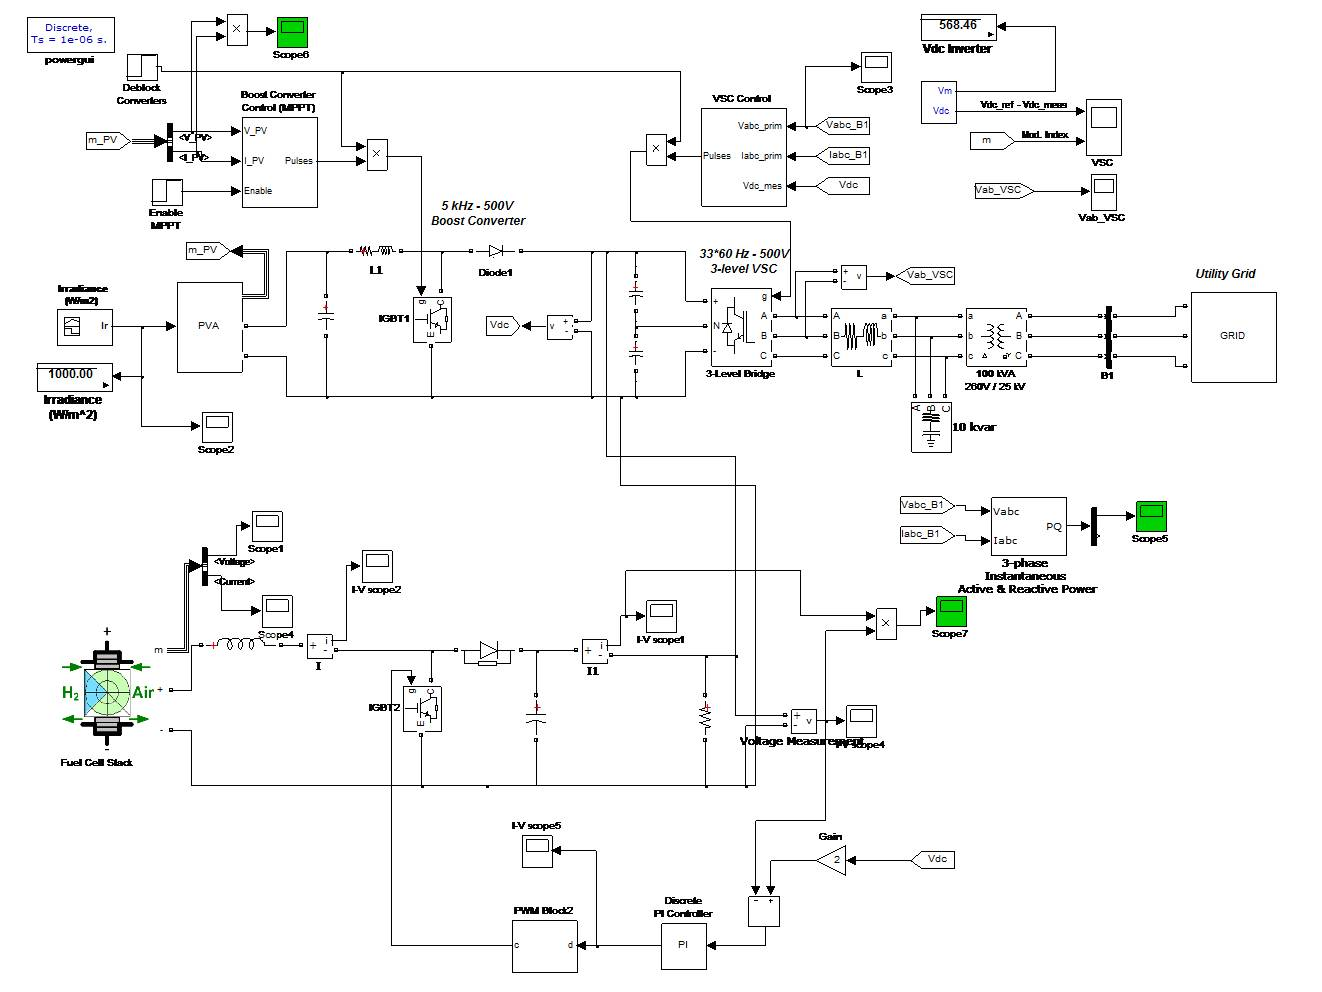 power system matlab thesis Home / matlab / power system / power distribution network reconfiguration sale  use coupon code ft-50ju contact at admin@free-thesiscom for any inquiry.